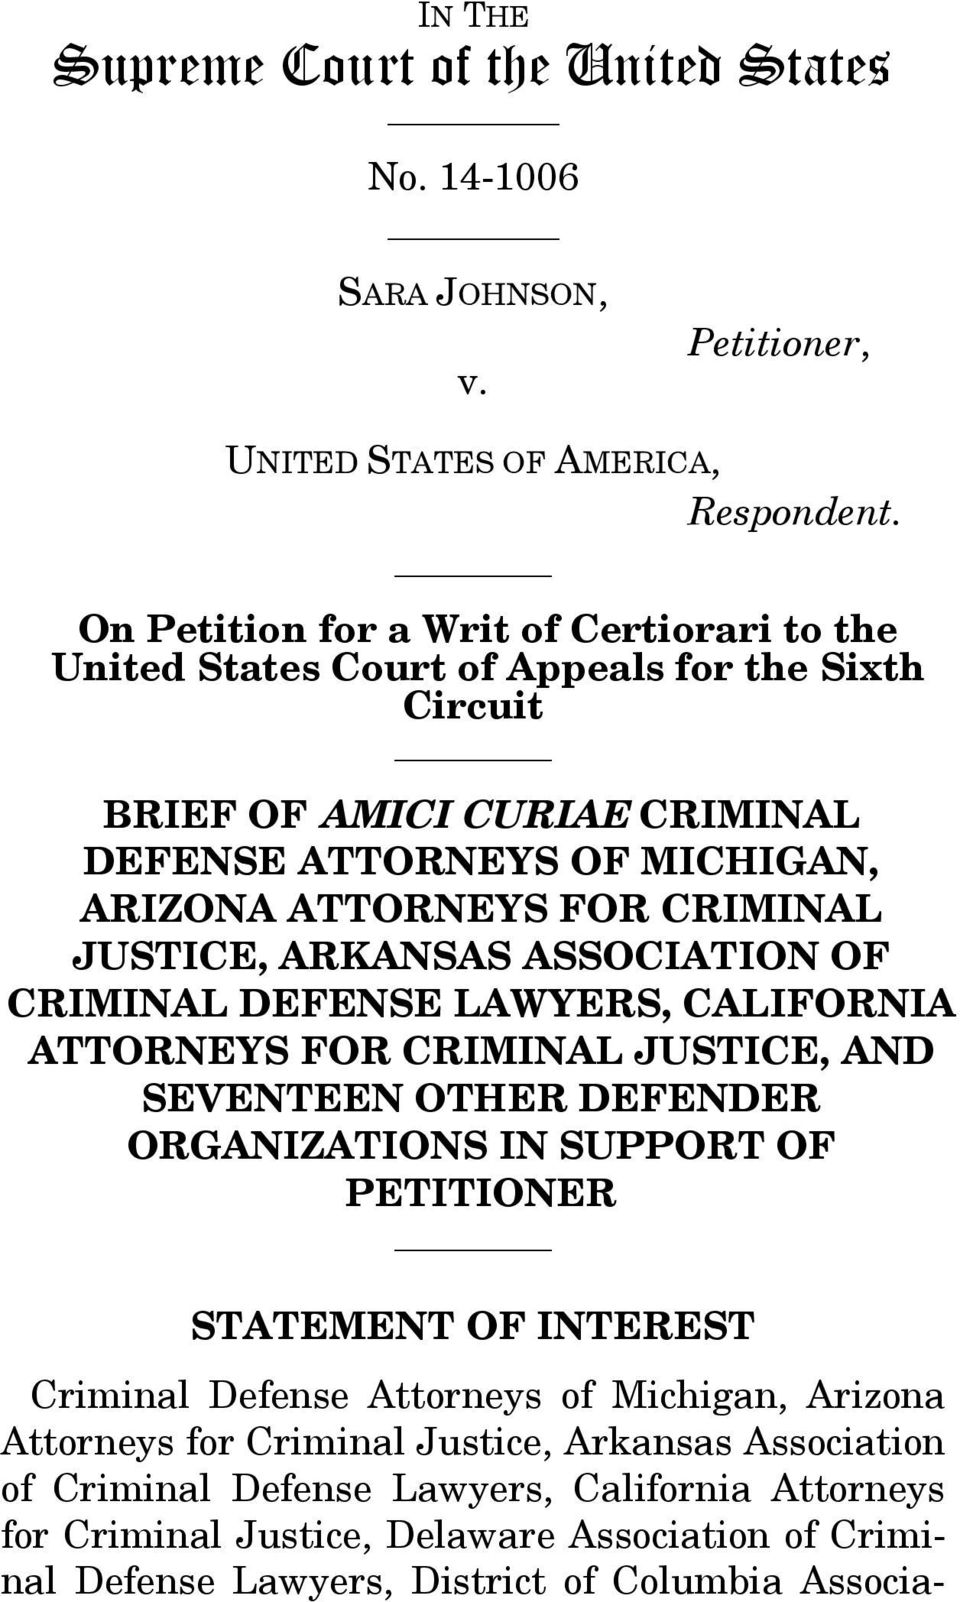 CRIMINAL JUSTICE, ARKANSAS ASSOCIATION OF CRIMINAL DEFENSE LAWYERS, CALIFORNIA ATTORNEYS FOR CRIMINAL JUSTICE, AND SEVENTEEN OTHER DEFENDER ORGANIZATIONS IN SUPPORT OF PETITIONER STATEMENT